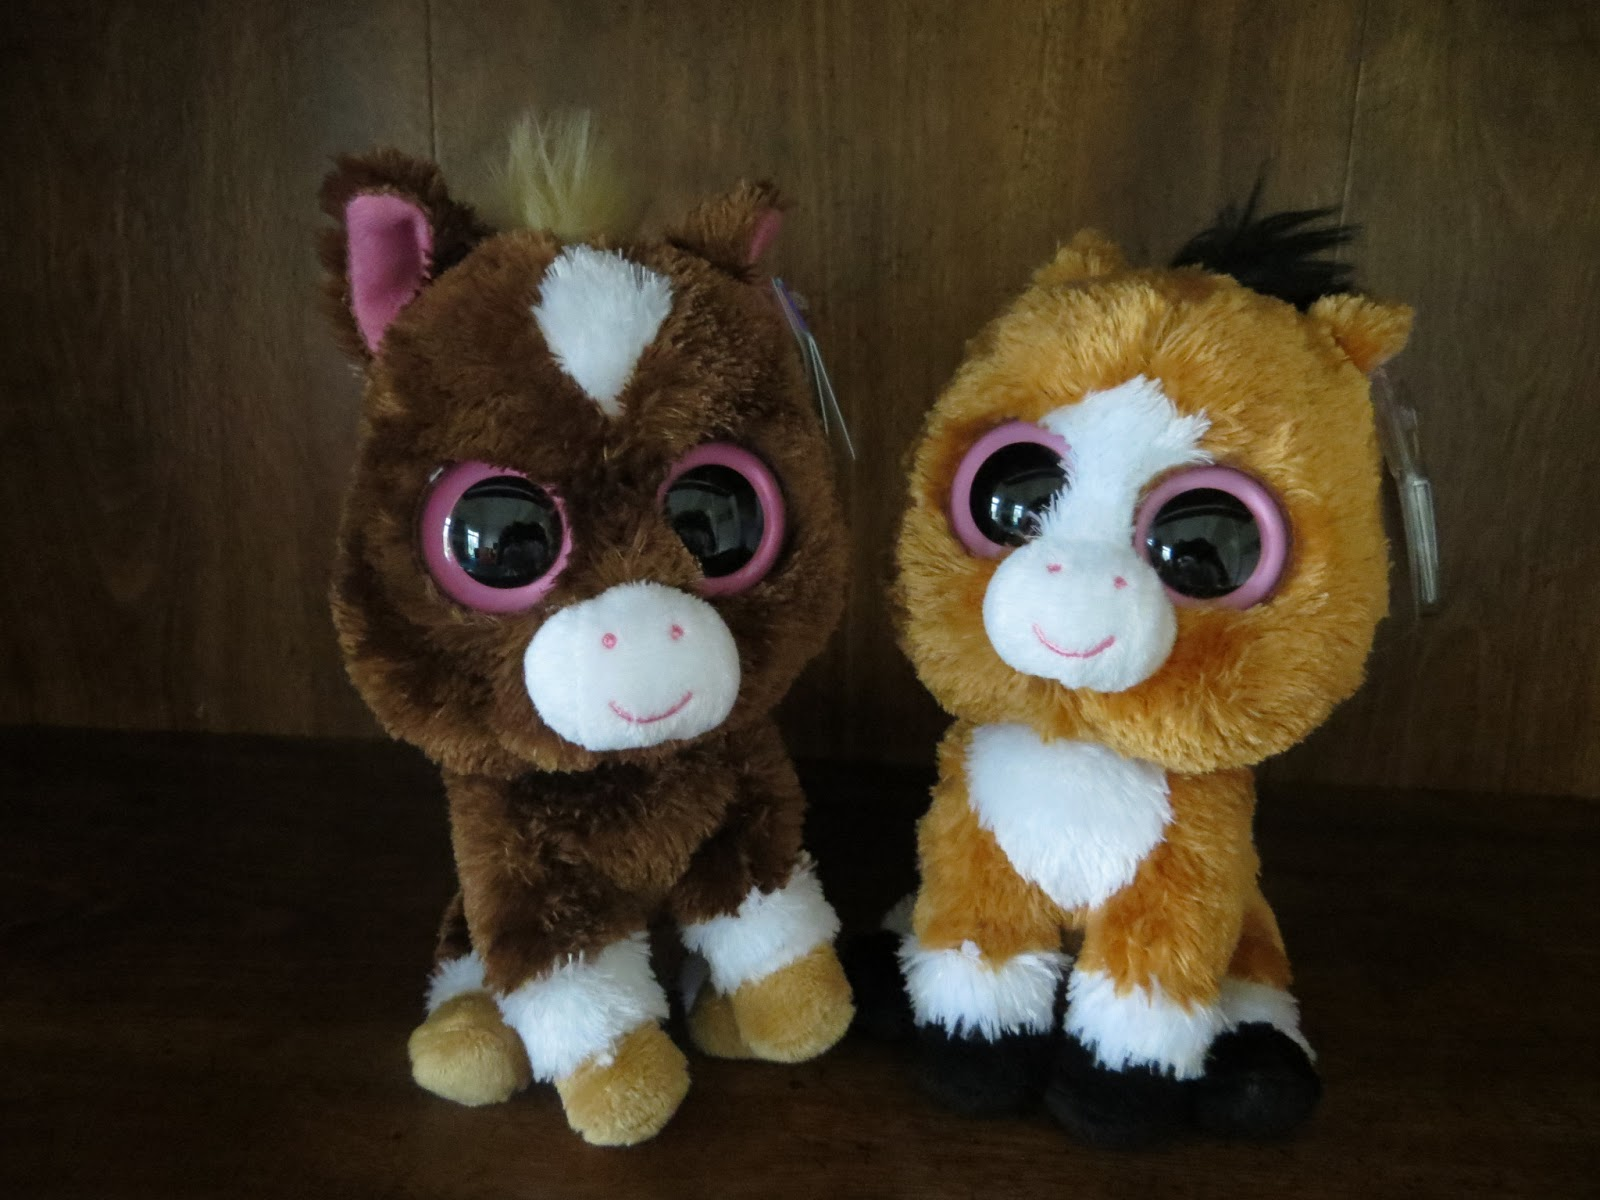 12a39e8fd0c Ty Beanie Boos Goddess   Day 5 Introduction of Beanie Boos (Horse)